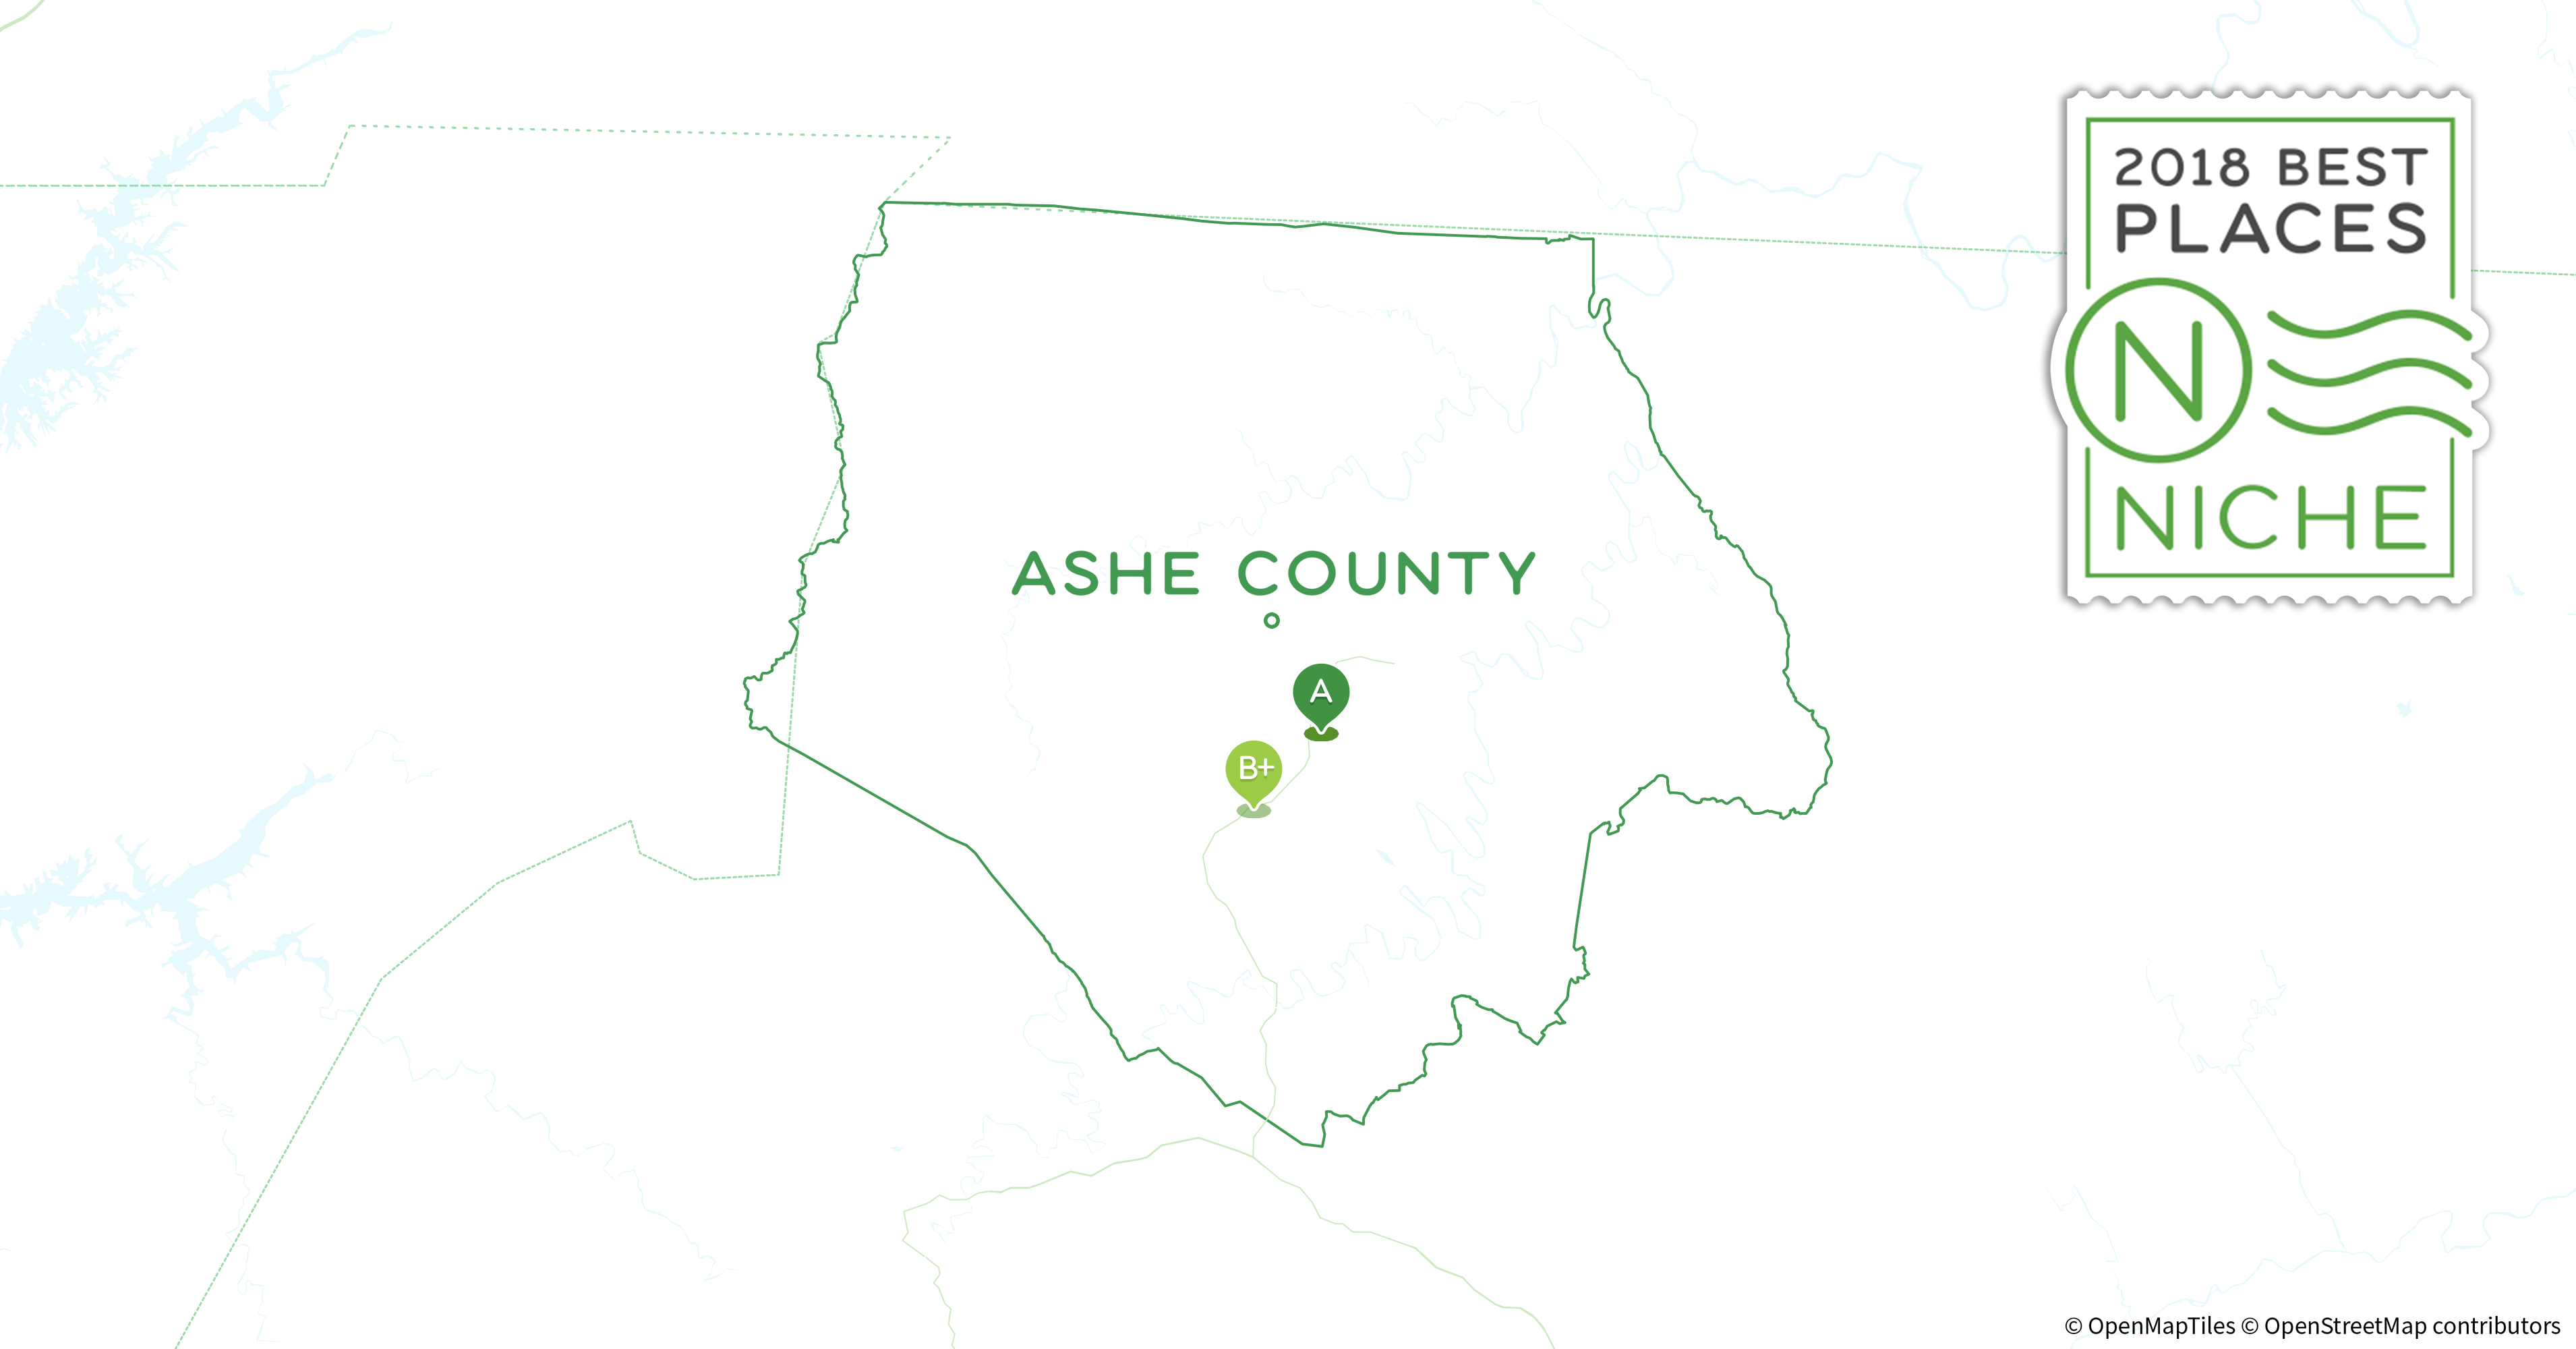 2018 Best Places To Retire In Ashe County Nc Niche